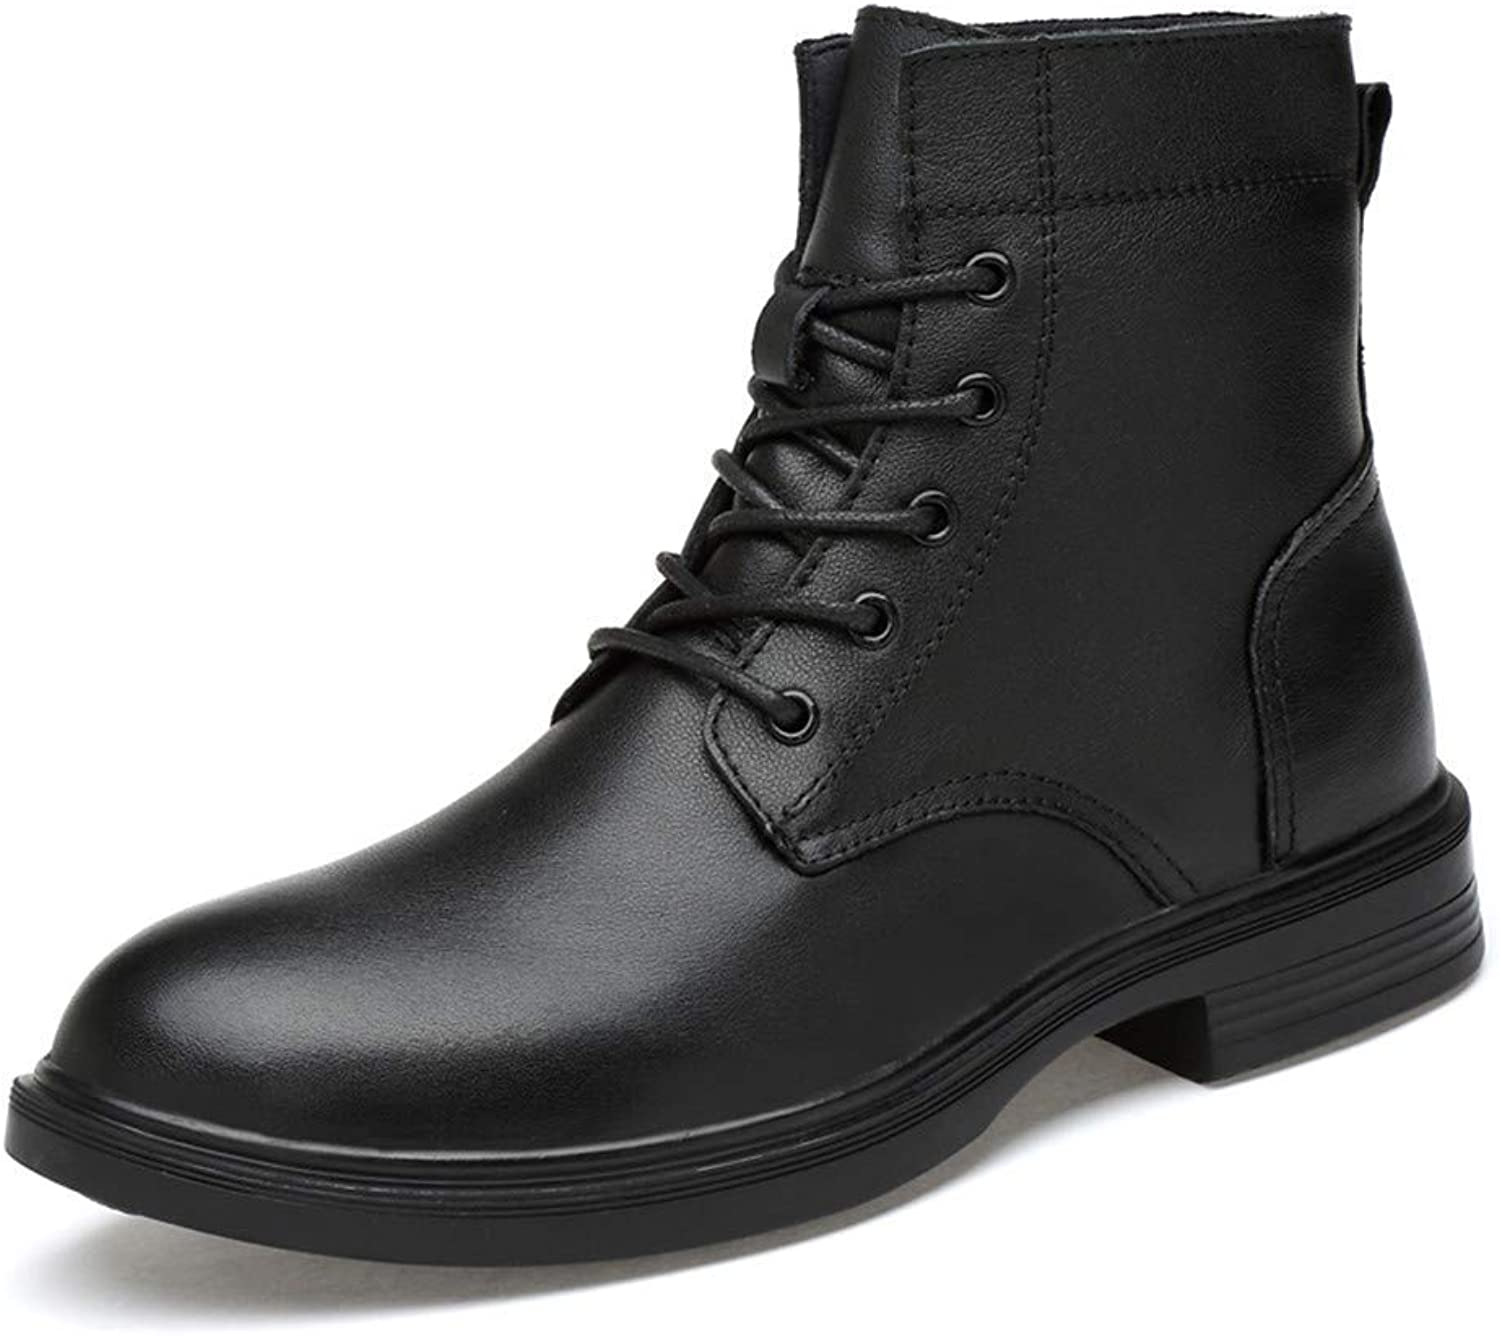 Fuxitoggo Men's Fashionable Ankle Boots, Casual Comfortable And Soft High Top Sole Martin Boots (Warm Velvet Optional) (color  Black, Size  47 EU) (color   As shown, Size   One size)